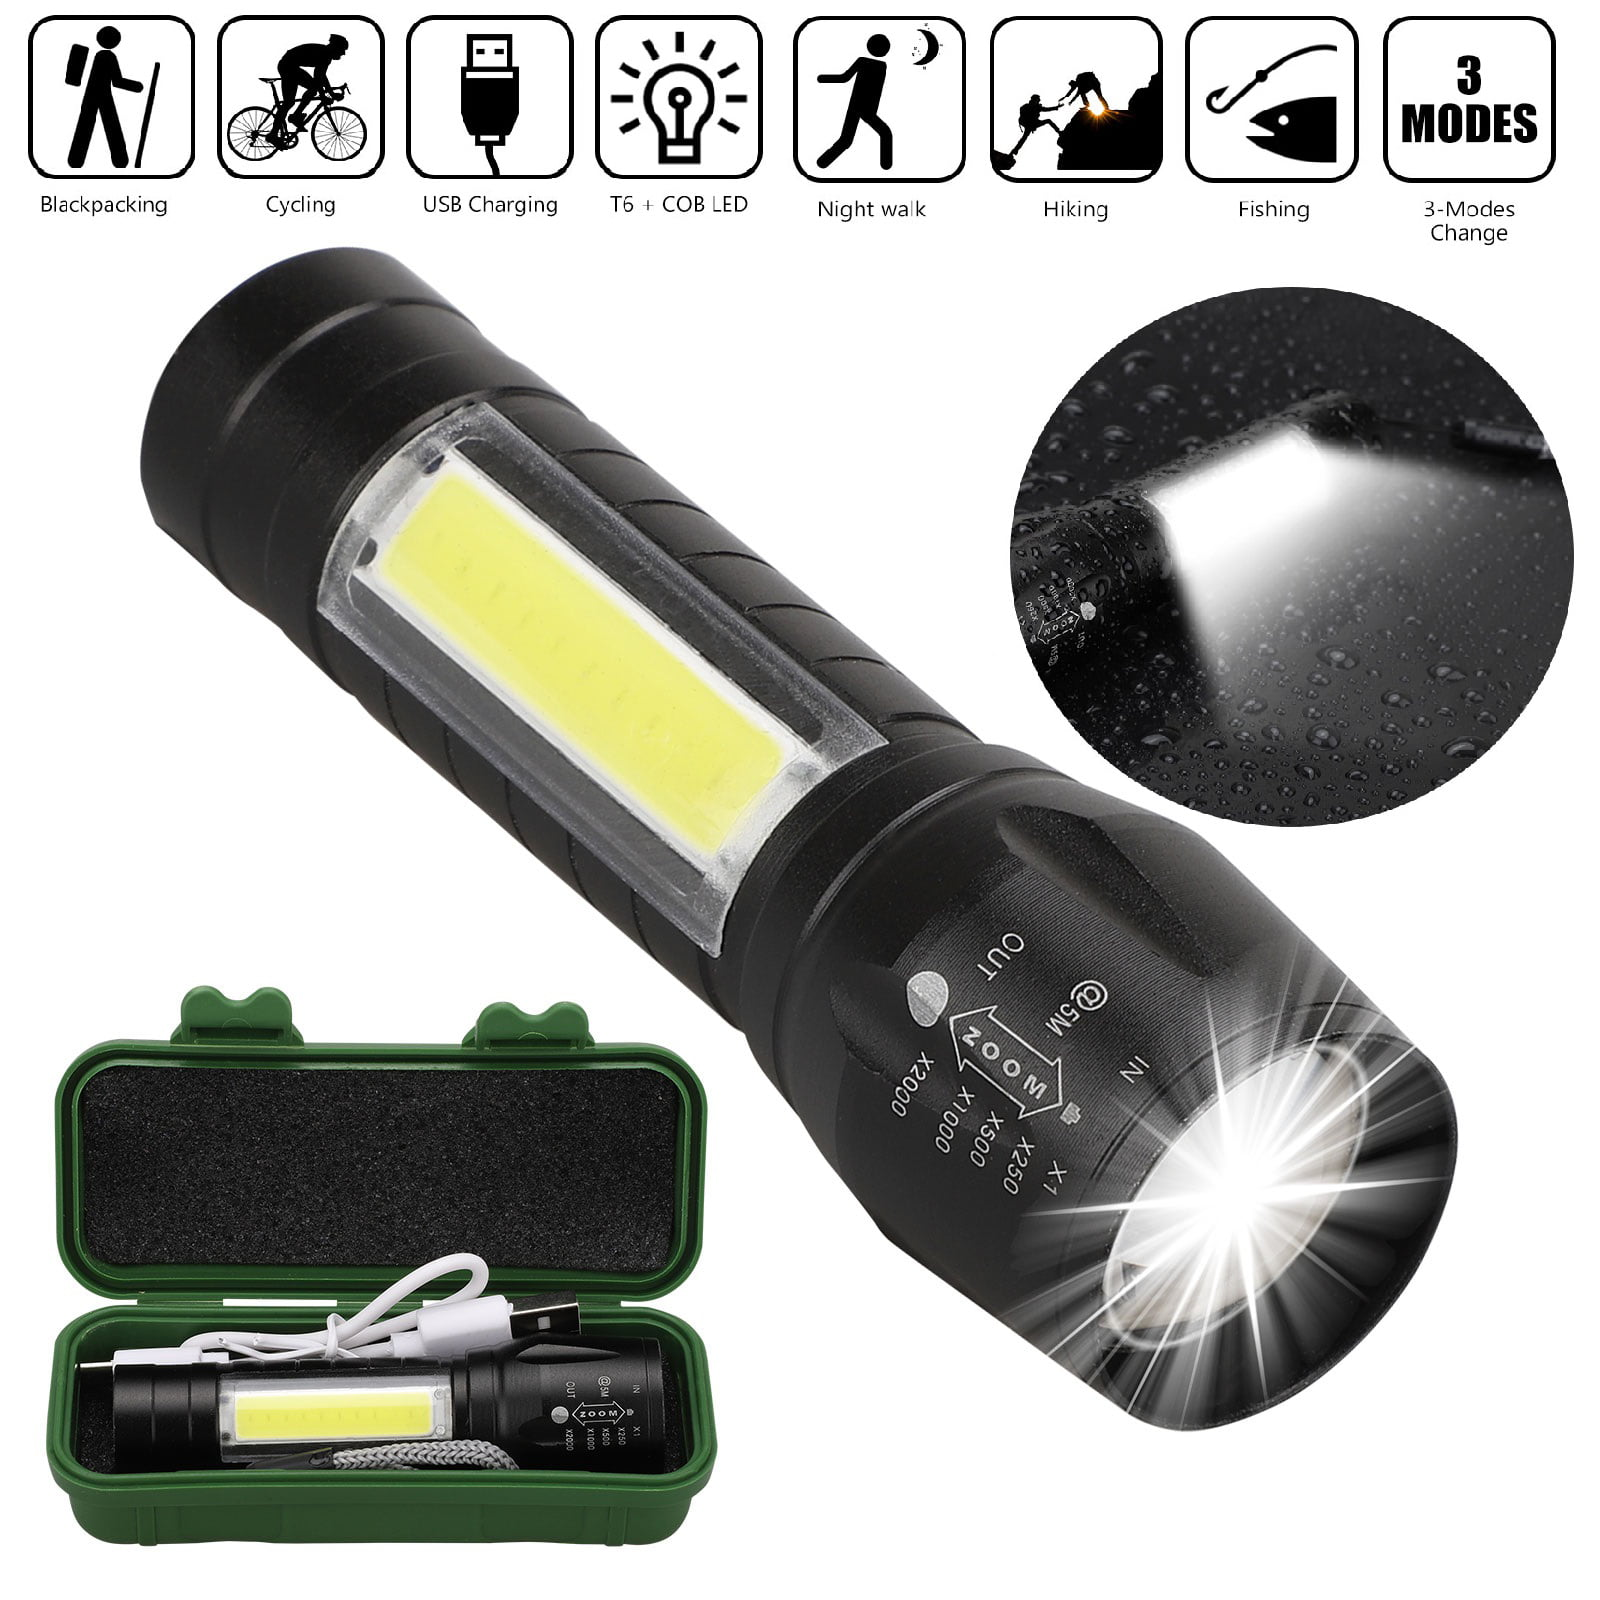 LED Torch USB Rechargeable Small Flashlight Zoomable Camping Electric Torch